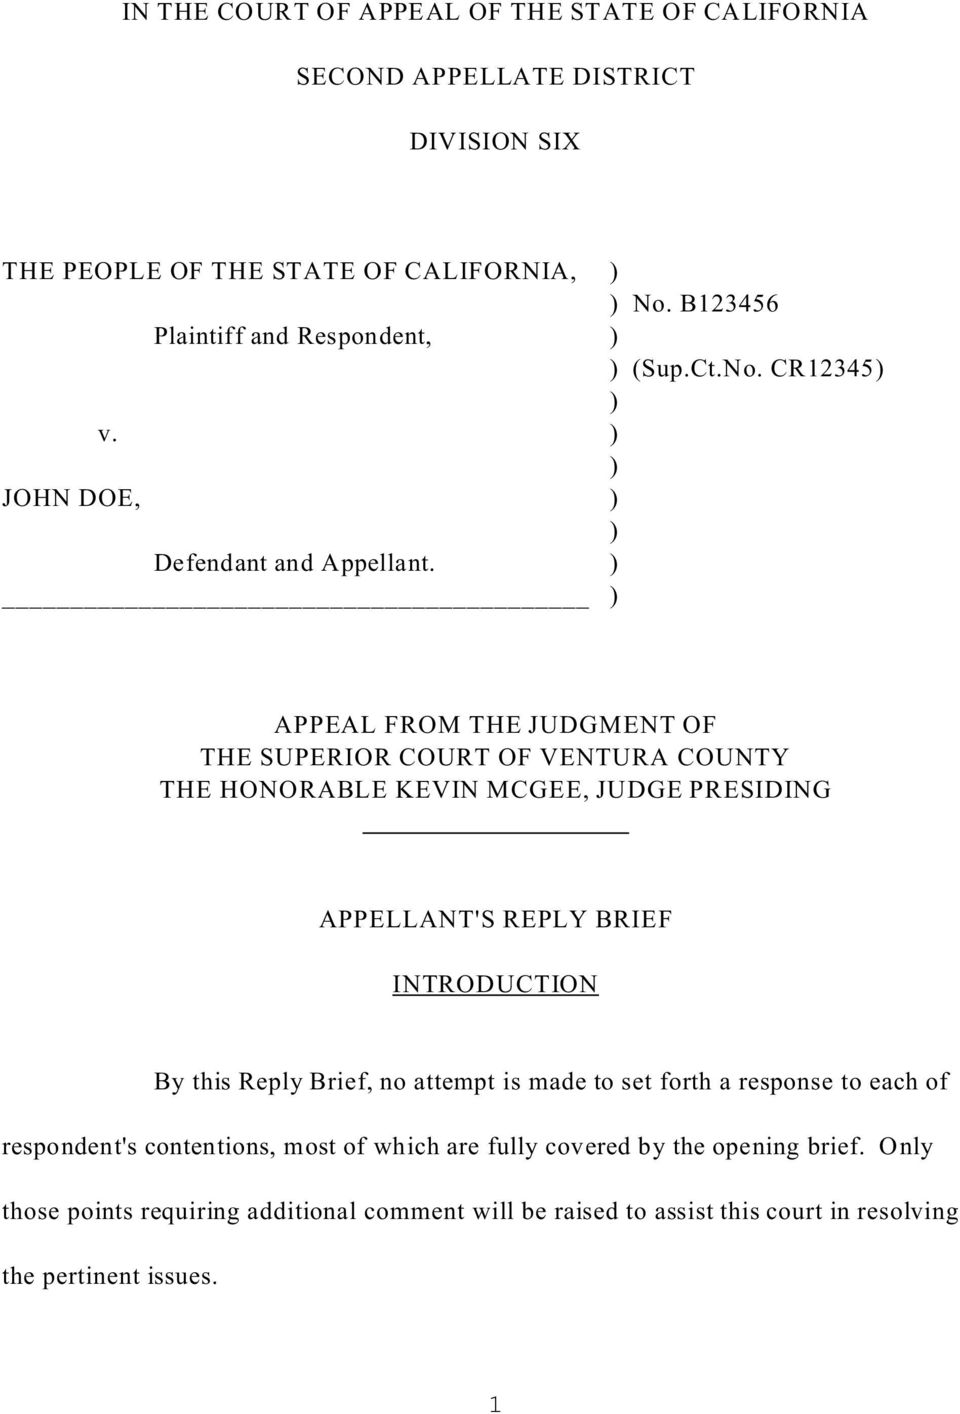 ) ) APPEAL FROM THE JUDGMENT OF THE SUPERIOR COURT OF VENTURA COUNTY THE HONORABLE KEVIN MCGEE, JUDGE PRESIDING APPELLANT'S REPLY BRIEF INTRODUCTION By this Reply